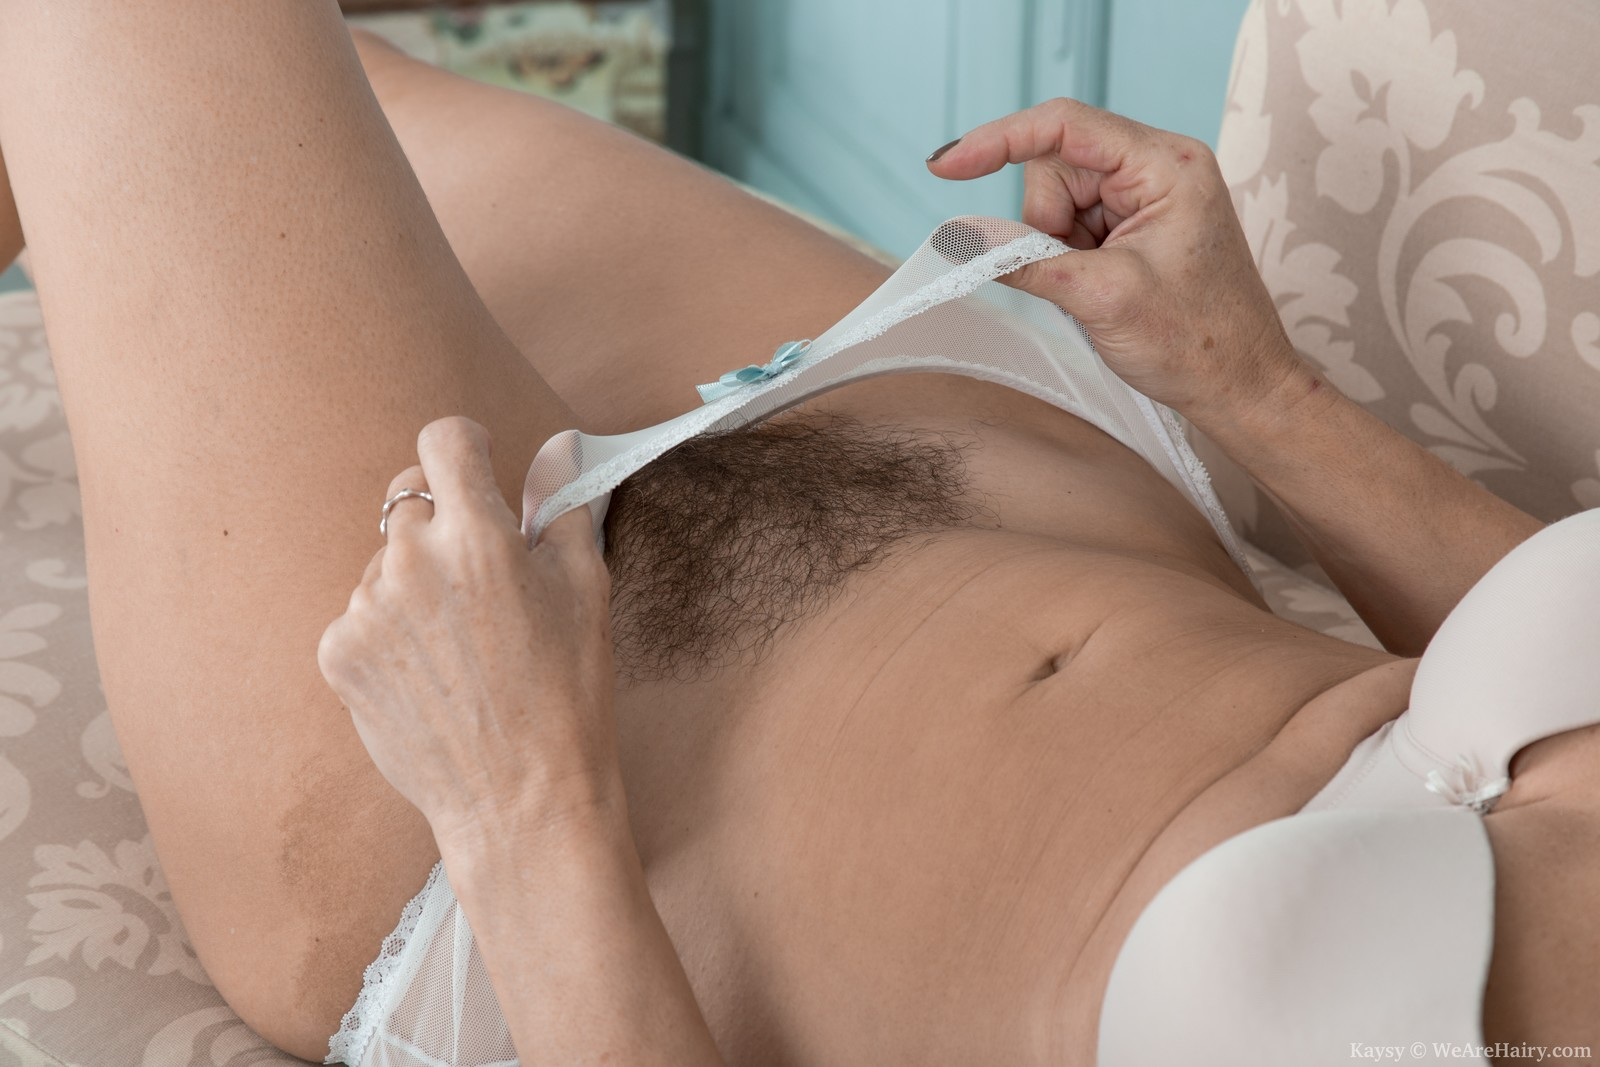 http://thehairylady.com/blog/52-year-old-hairy-woman/